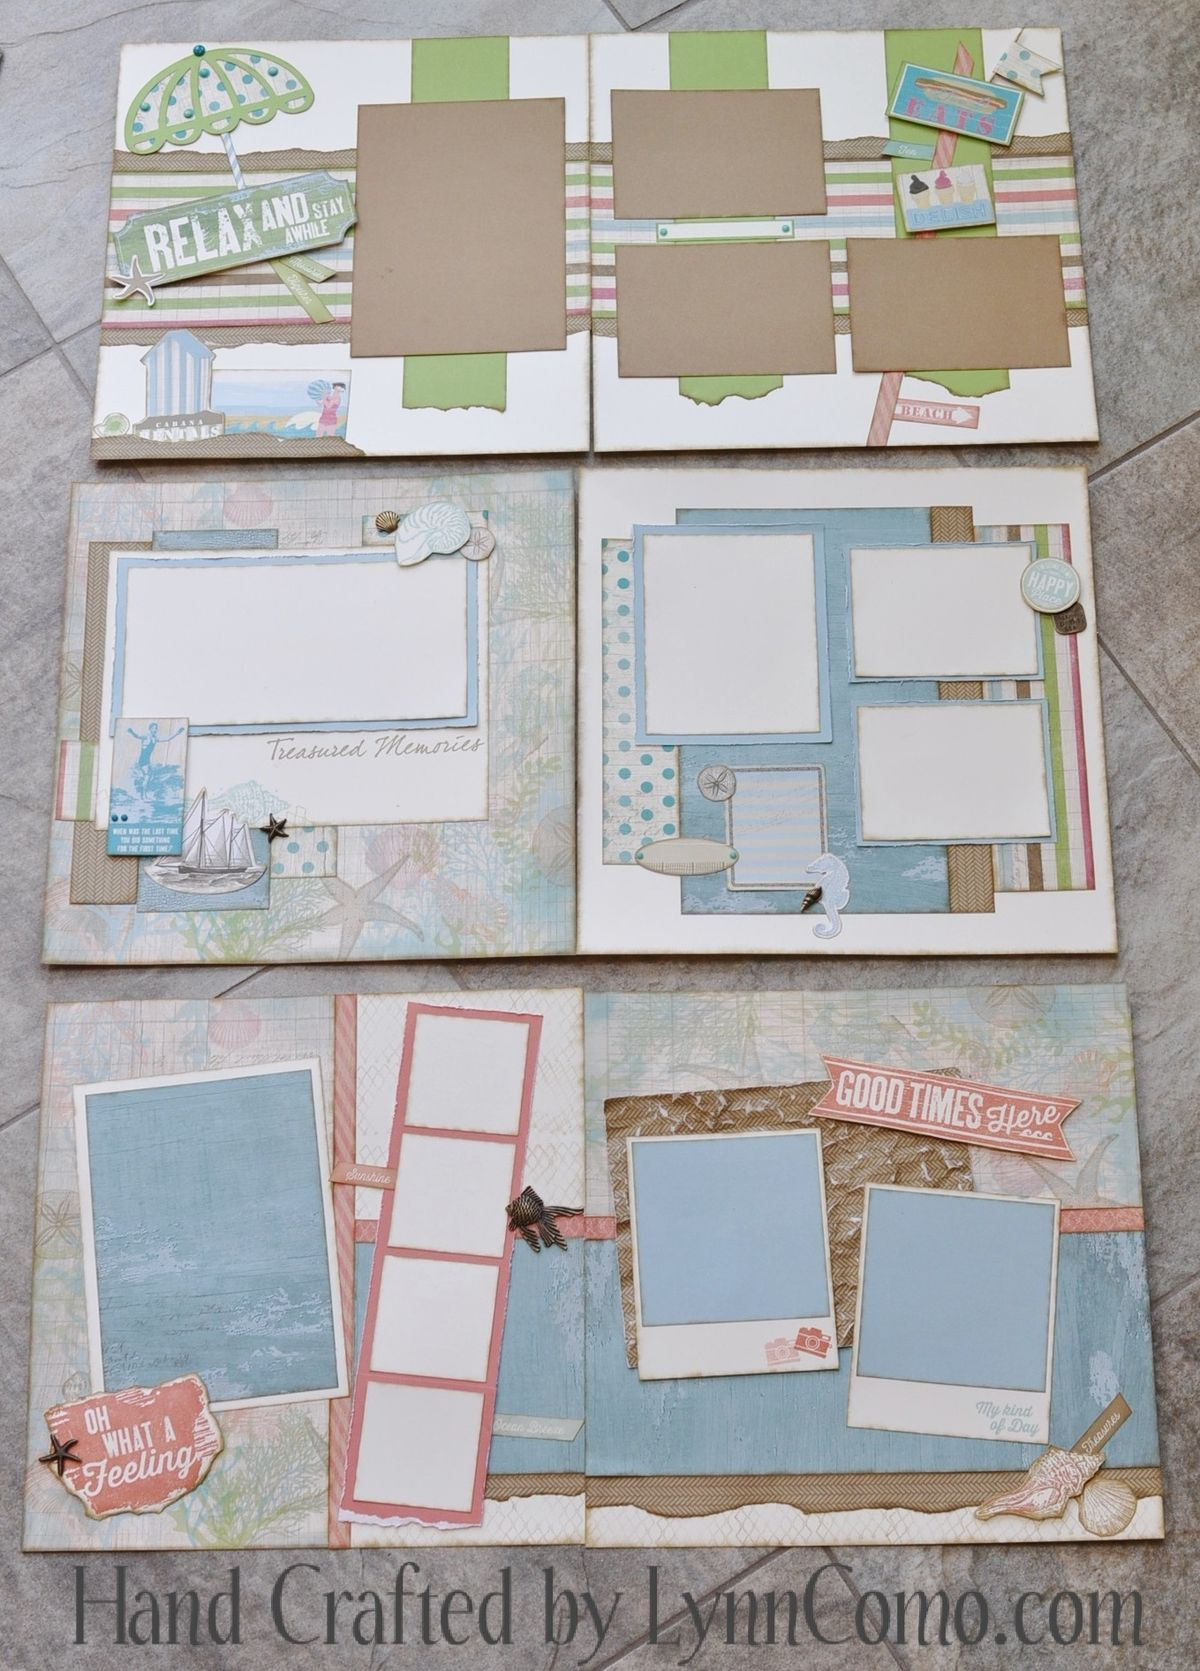 Cute Ideas For Scrapbooking 5870e1af67c5e55b82a9f71fae9b1d6b 1200x1671 Pixels